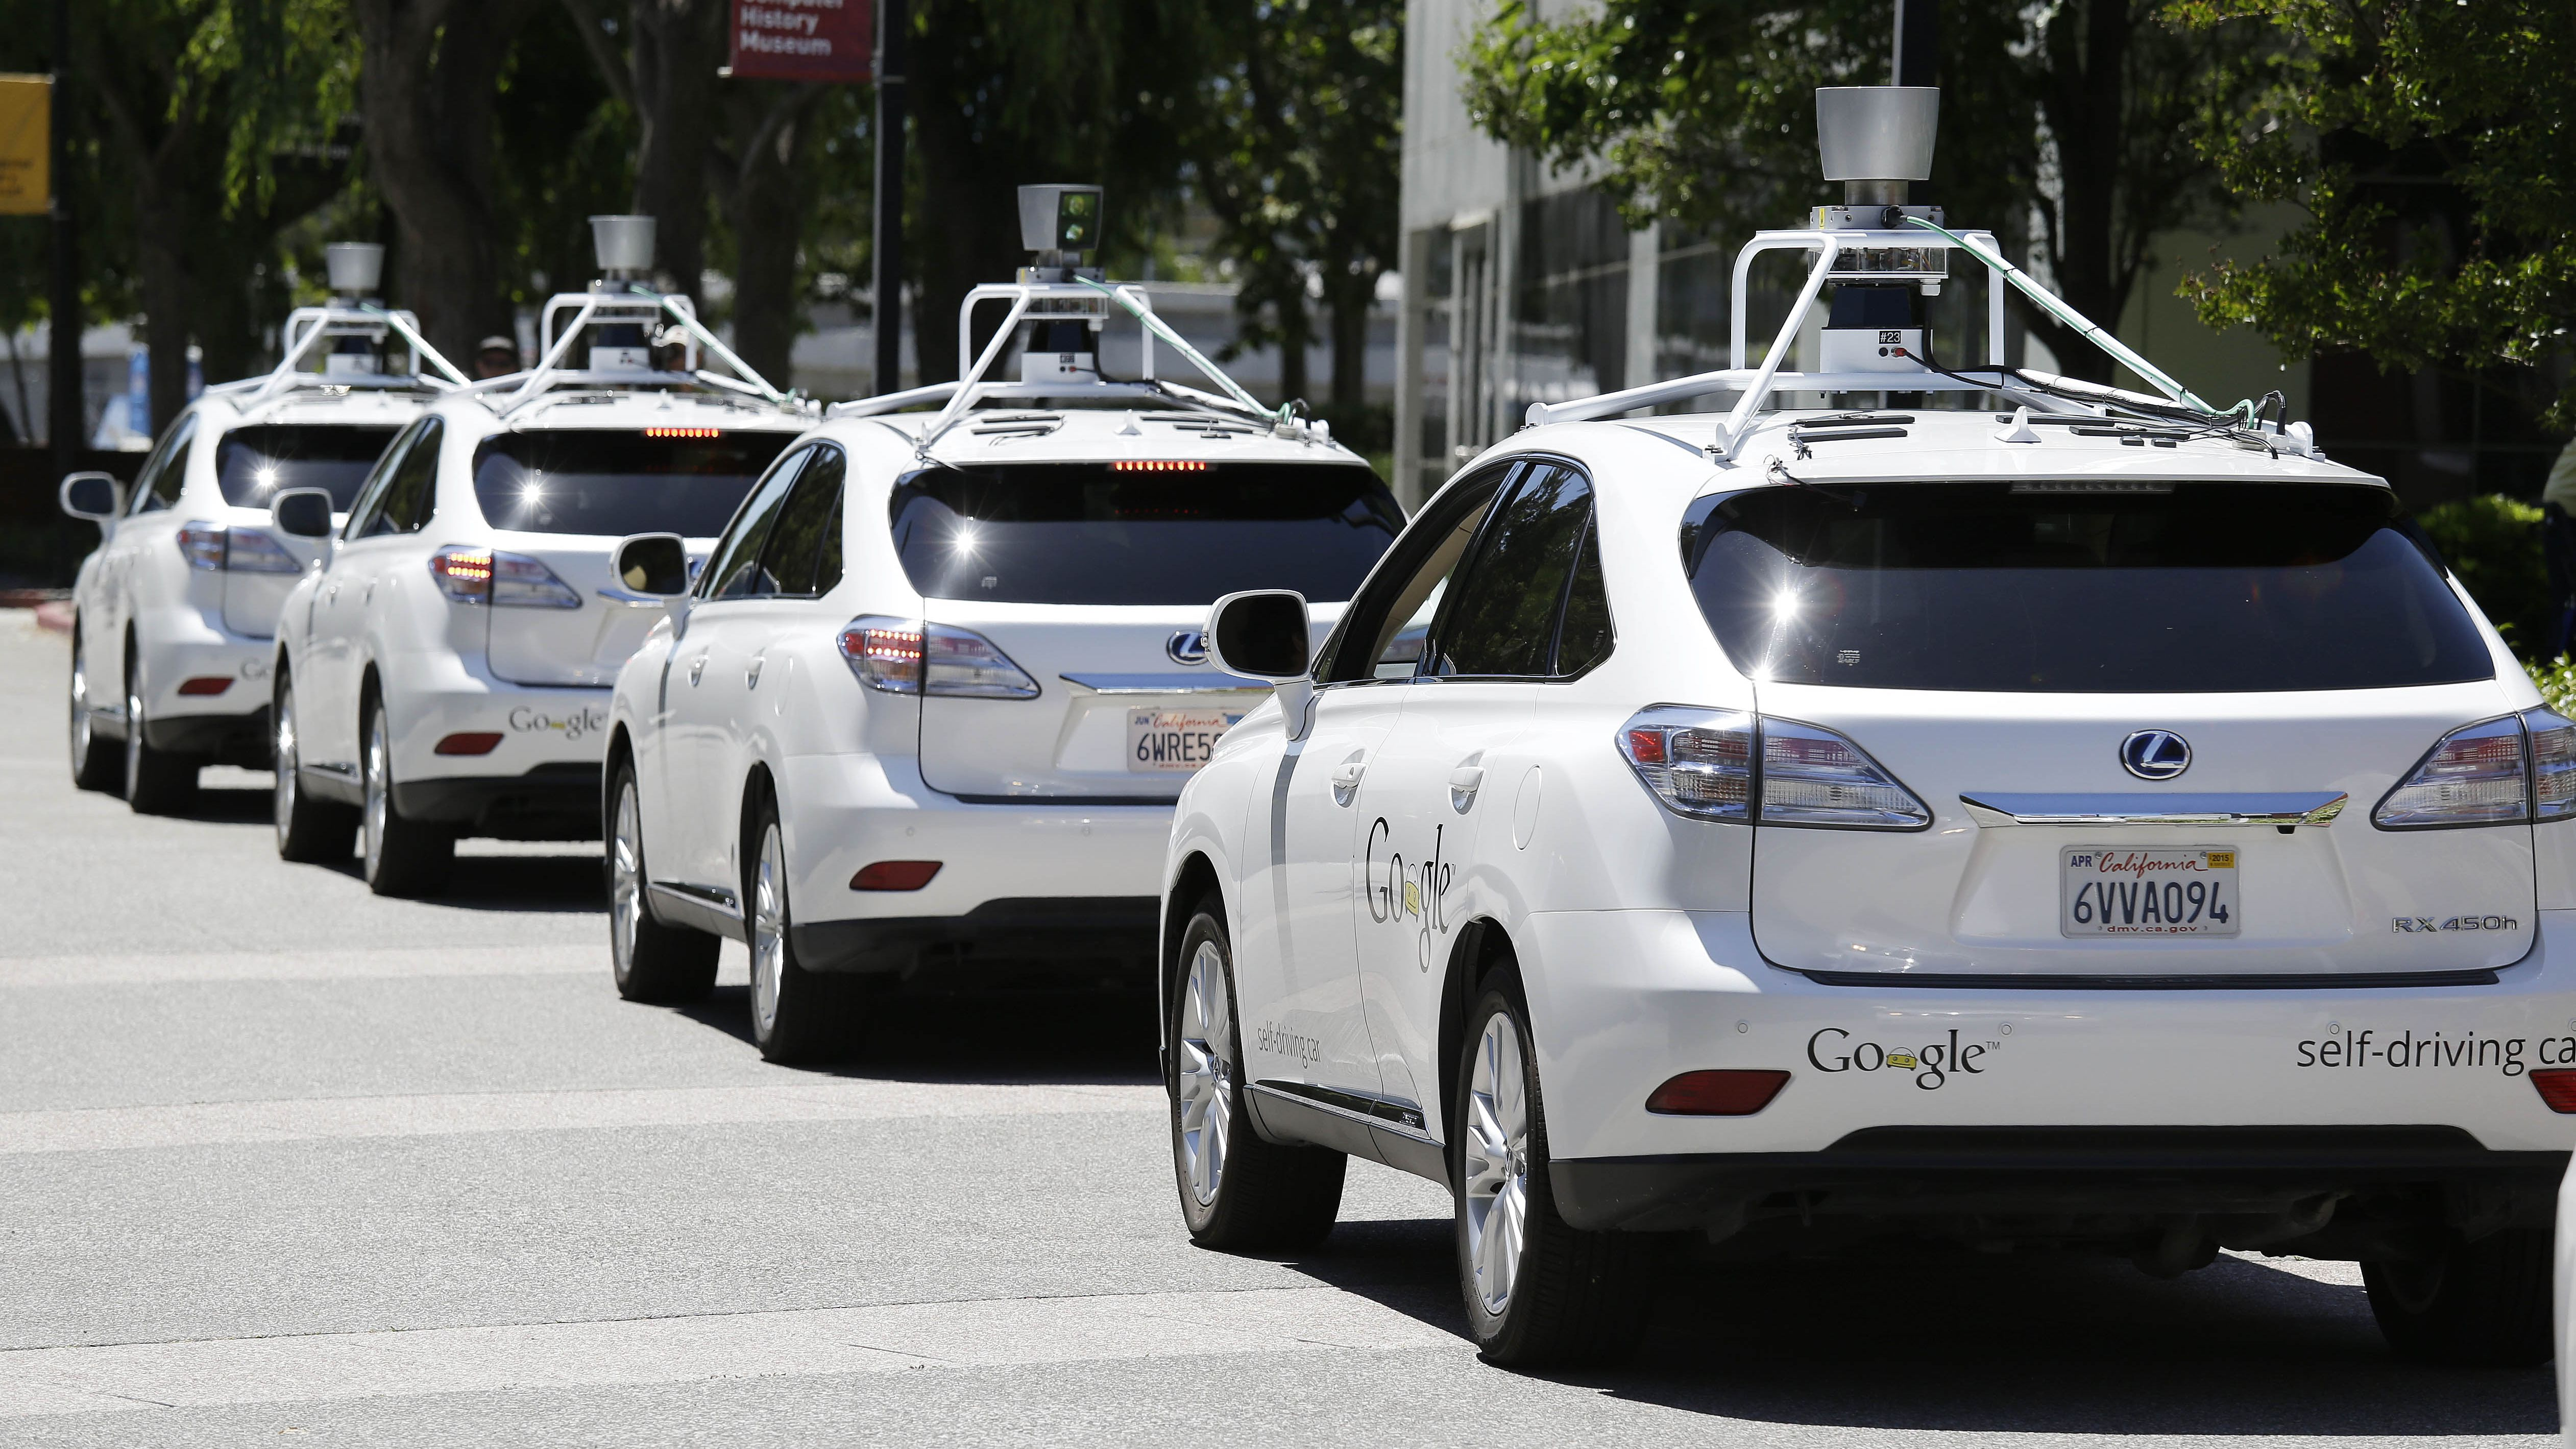 In this photo taken Wednesday, May 14, 2014, a row of Google self-driving cars are shown outside the Computer History Museum in Mountain View, Calif. Four years ago, the Google team developing cars which can drive themselves became convinced that, sooner than later, the technology would be ready for the masses. There was just one problem: Driverless cars almost certainly were illegal.(AP Photo/Eric Risberg)